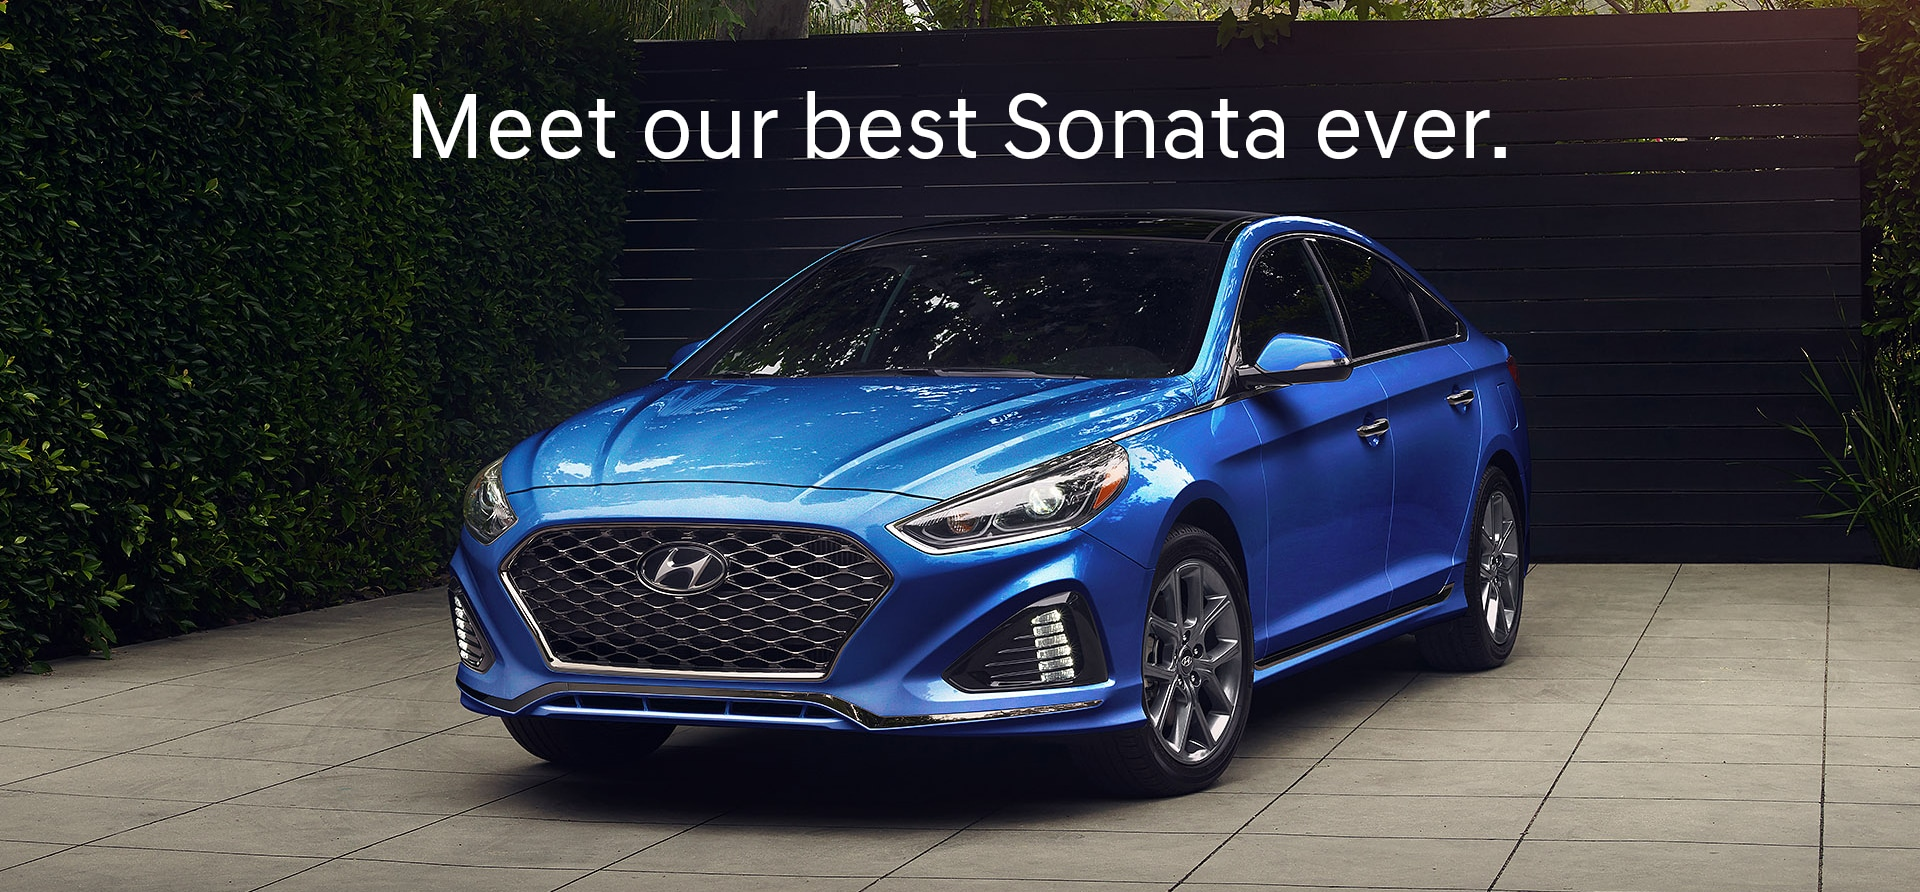 Get A Glimpse Of The 2018 Hyundai Sonata At Your #1 Volume Hyundai Dealer  In Chicago, IL!